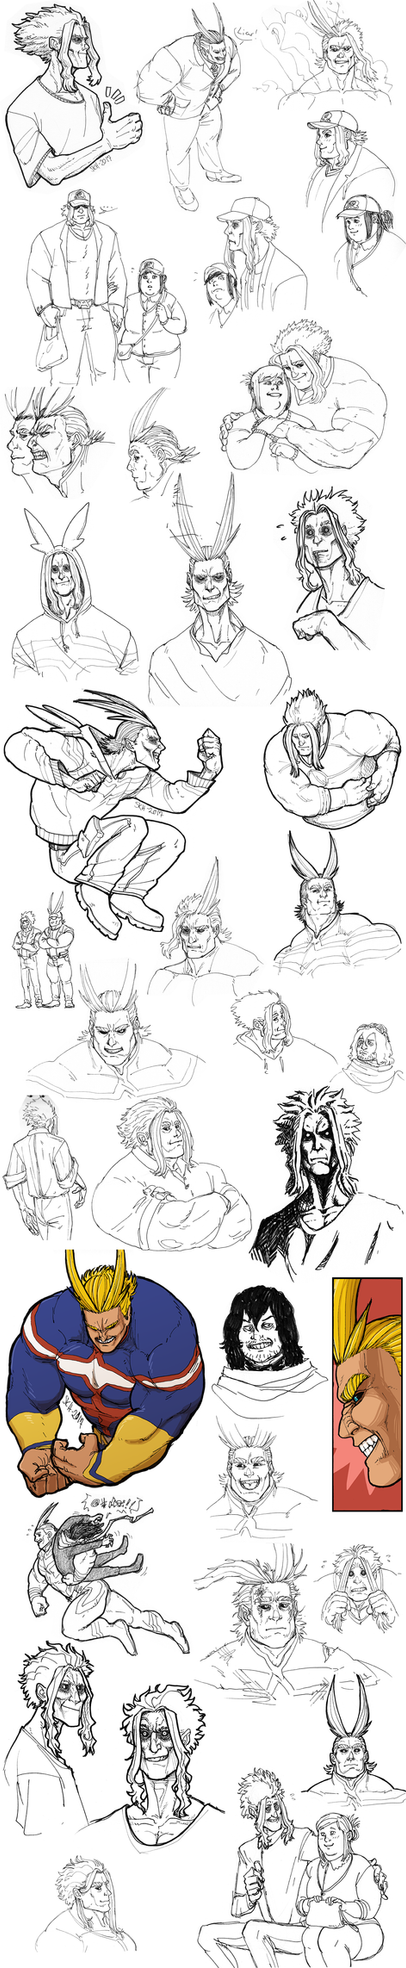 All Right All Might by Iceway